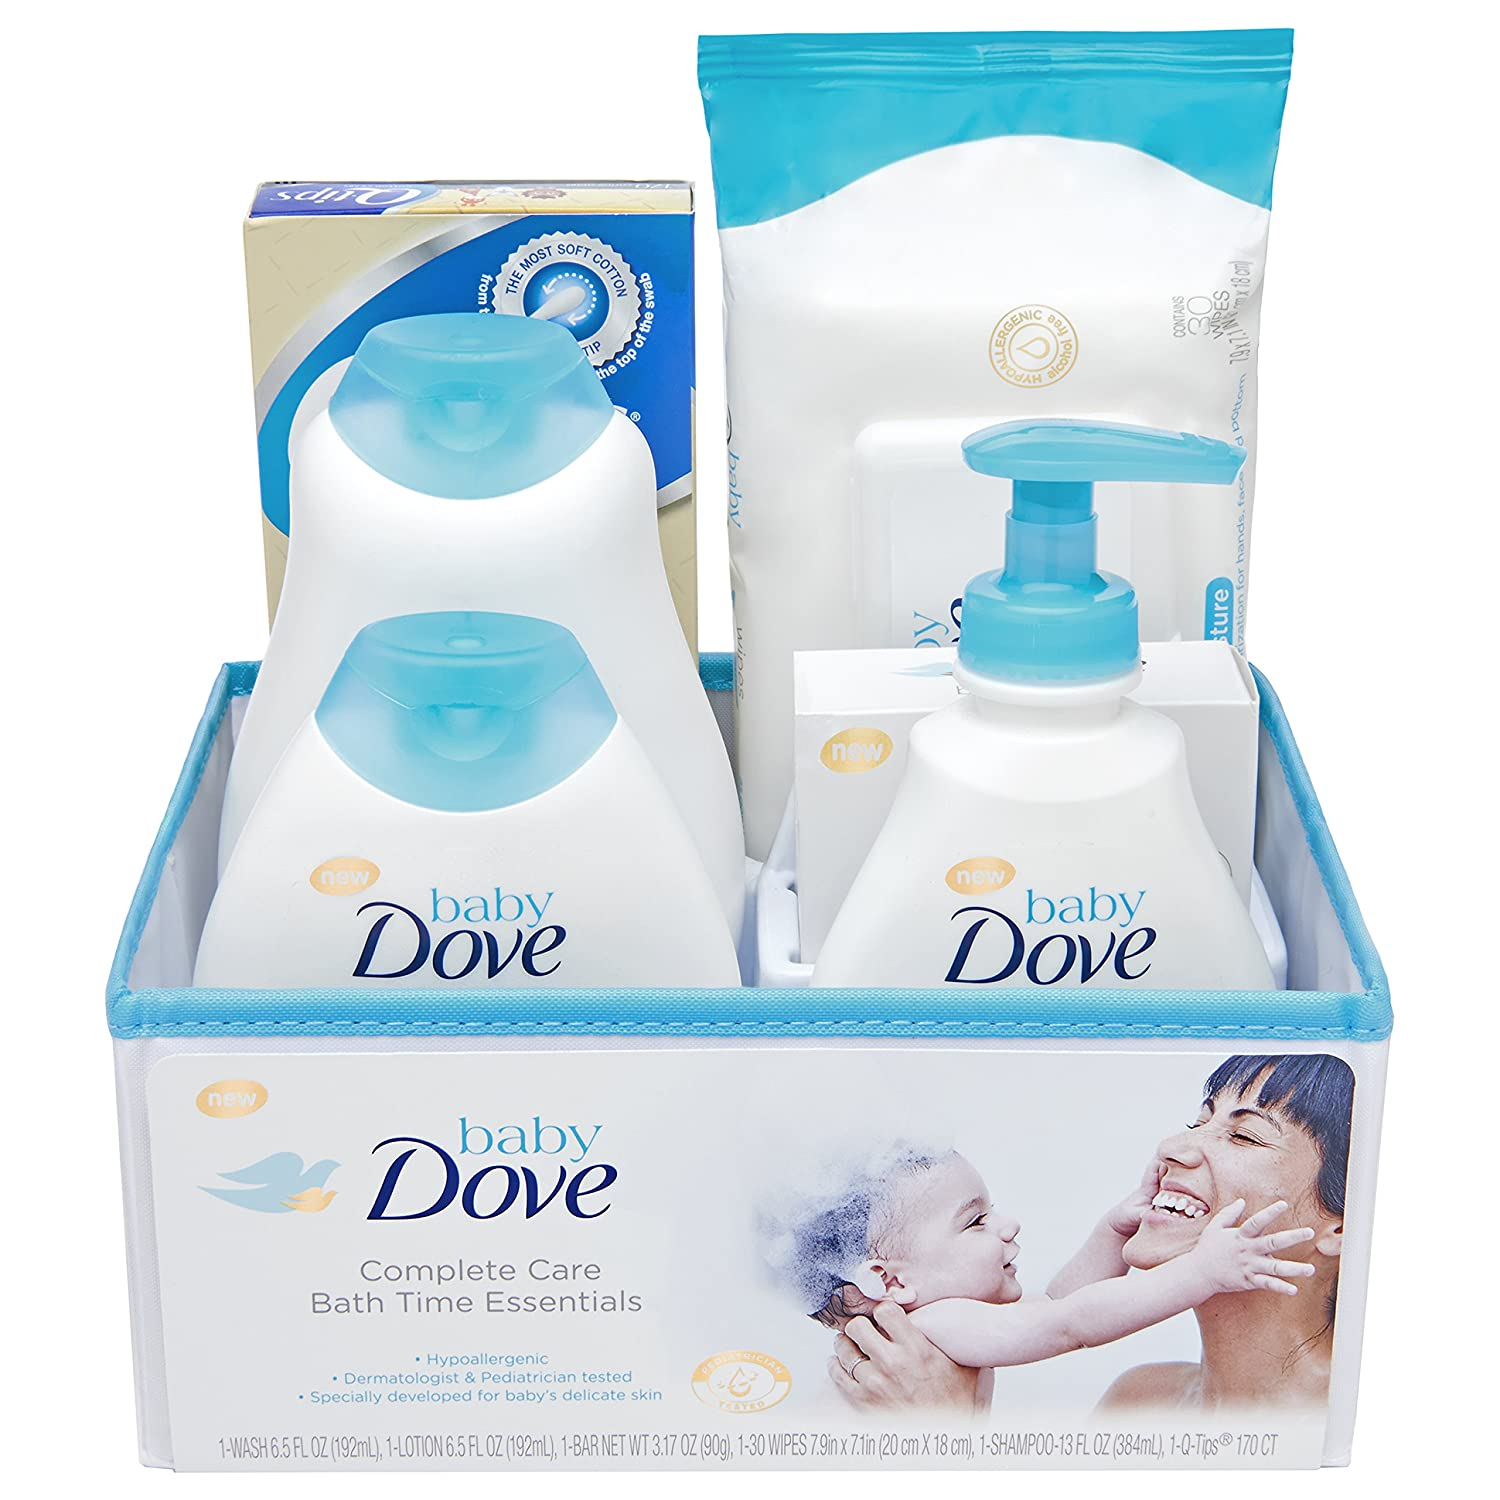 Amazon.com : Baby Dove Complete Care Bath Time Essentials, Gift Set ...